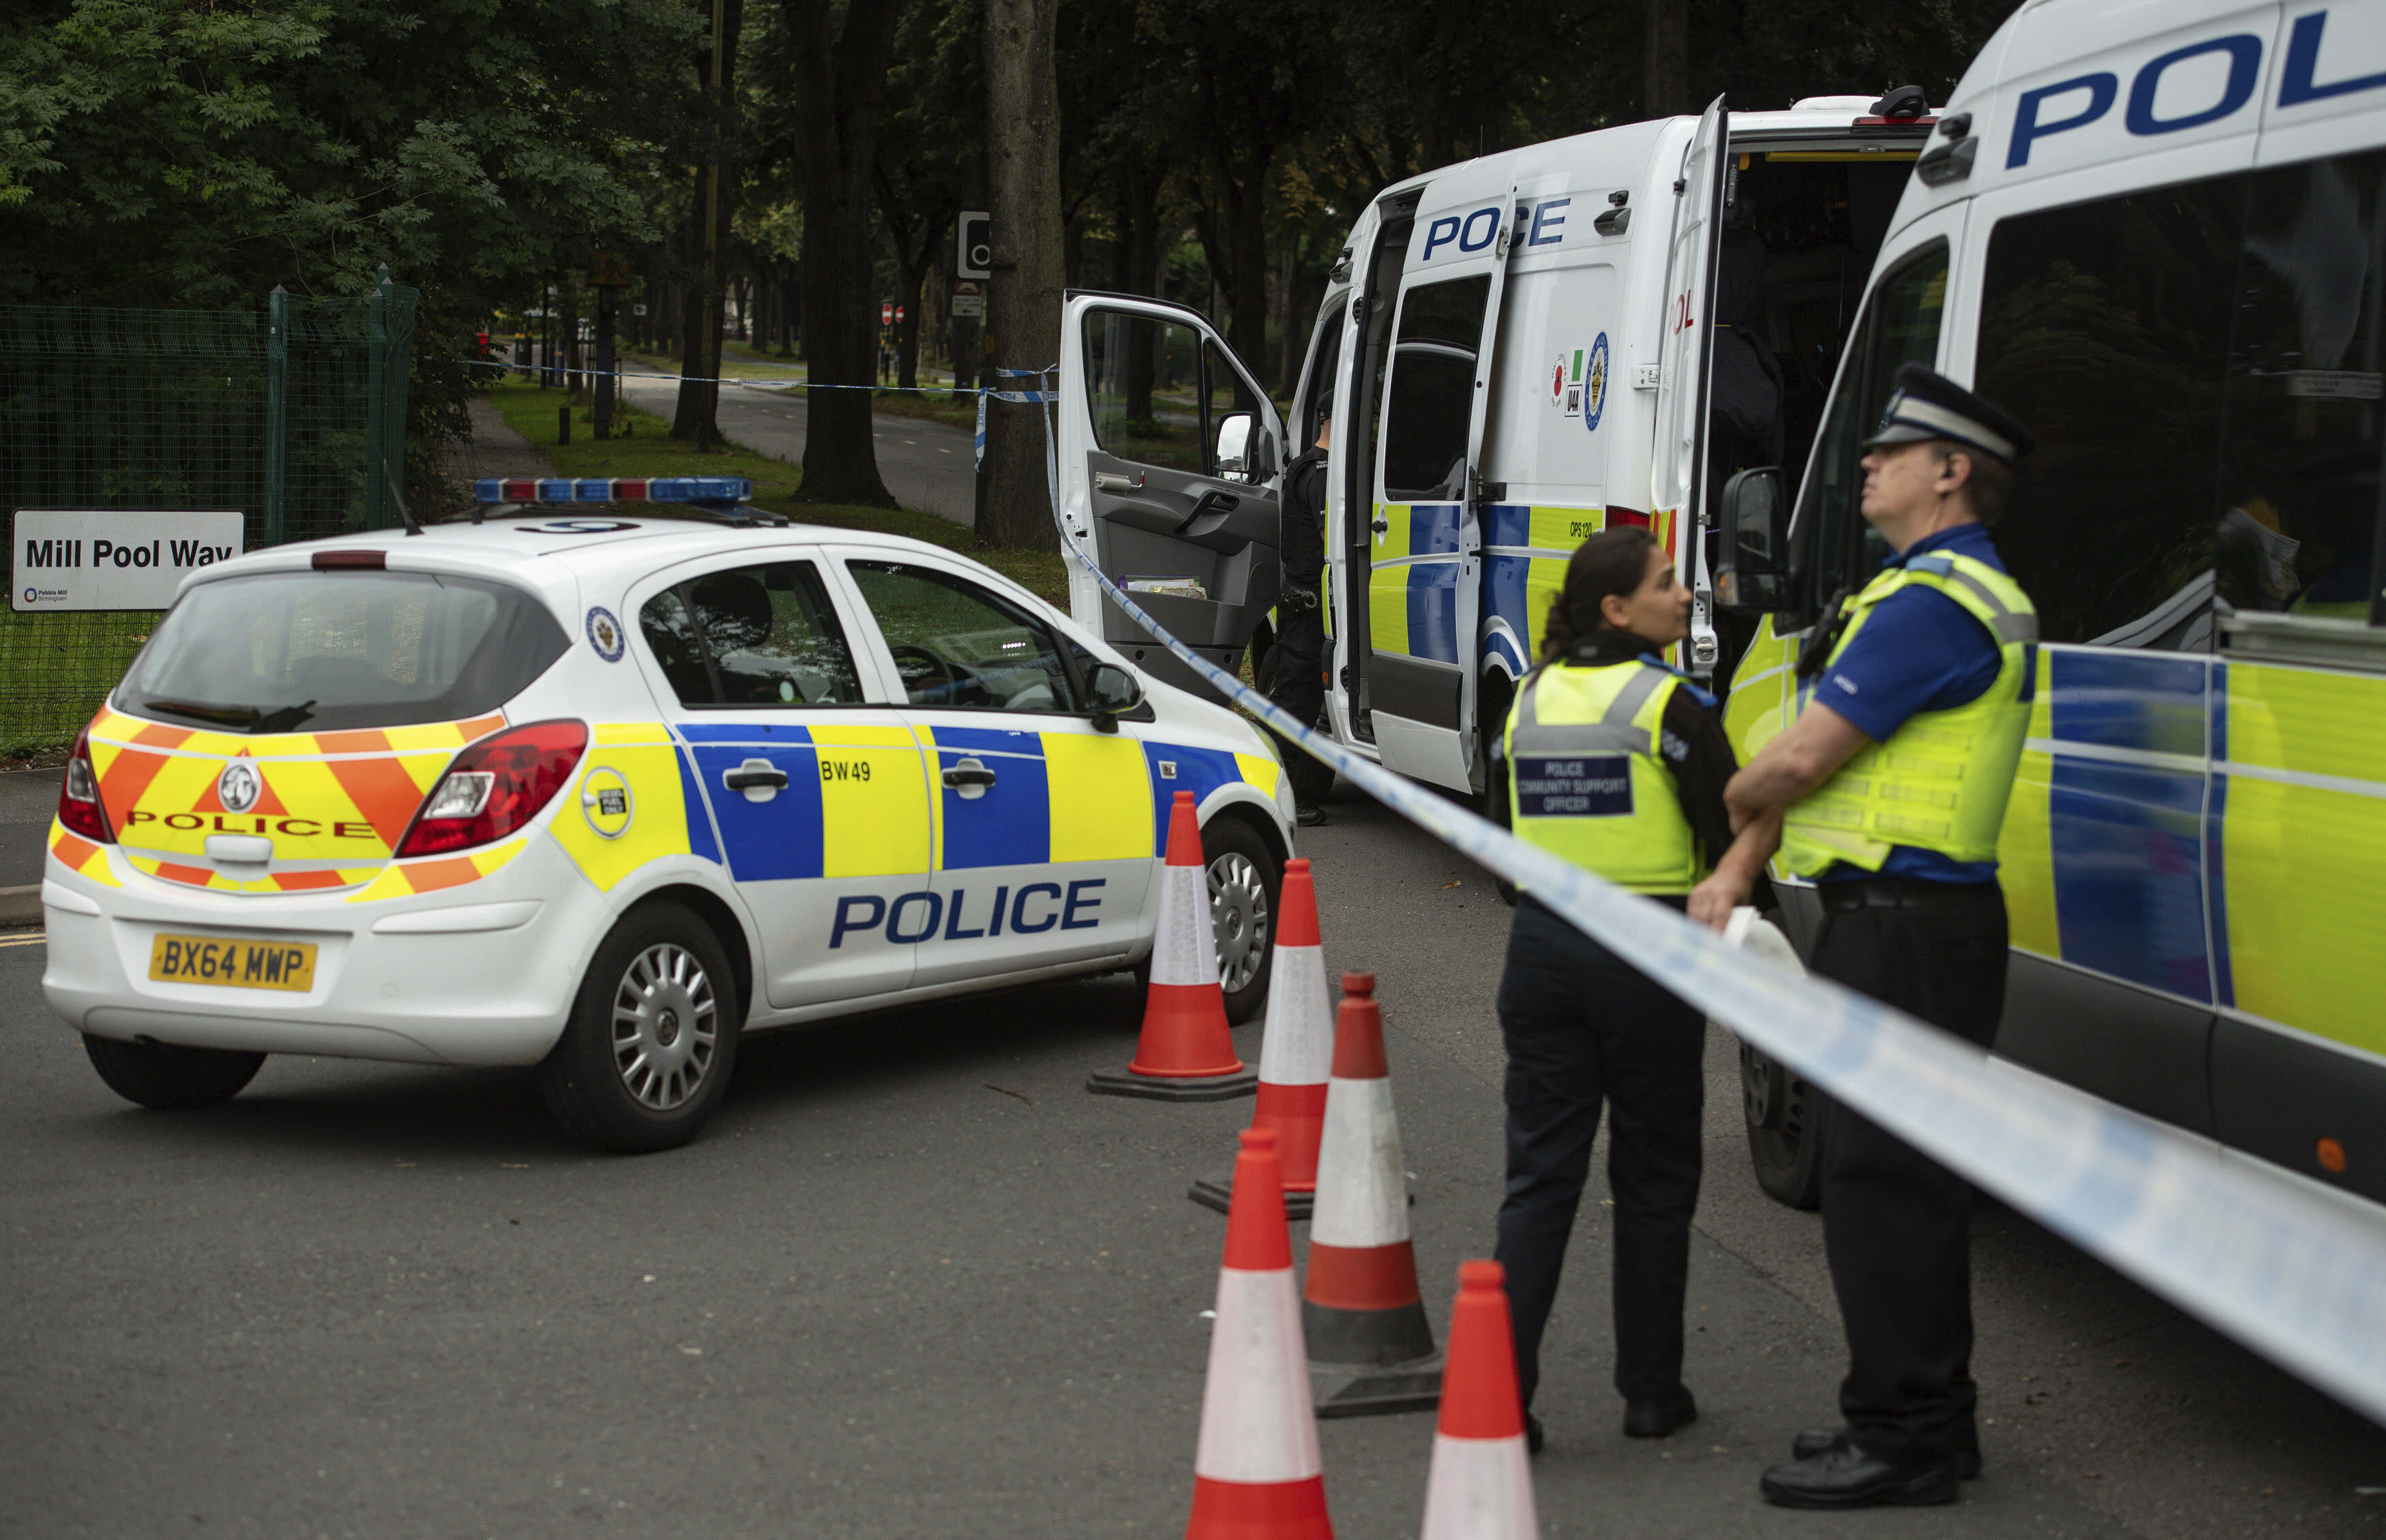 Police officers secure the area after a man was found fatally stabbed late Saturday, in Birmingham, England, Sunday Aug. 23, 2020. A 15-year-old girl and a 28-year-old woman were detained at the scene and according to the police, they remain in custody. (Jacob King/PA via AP)